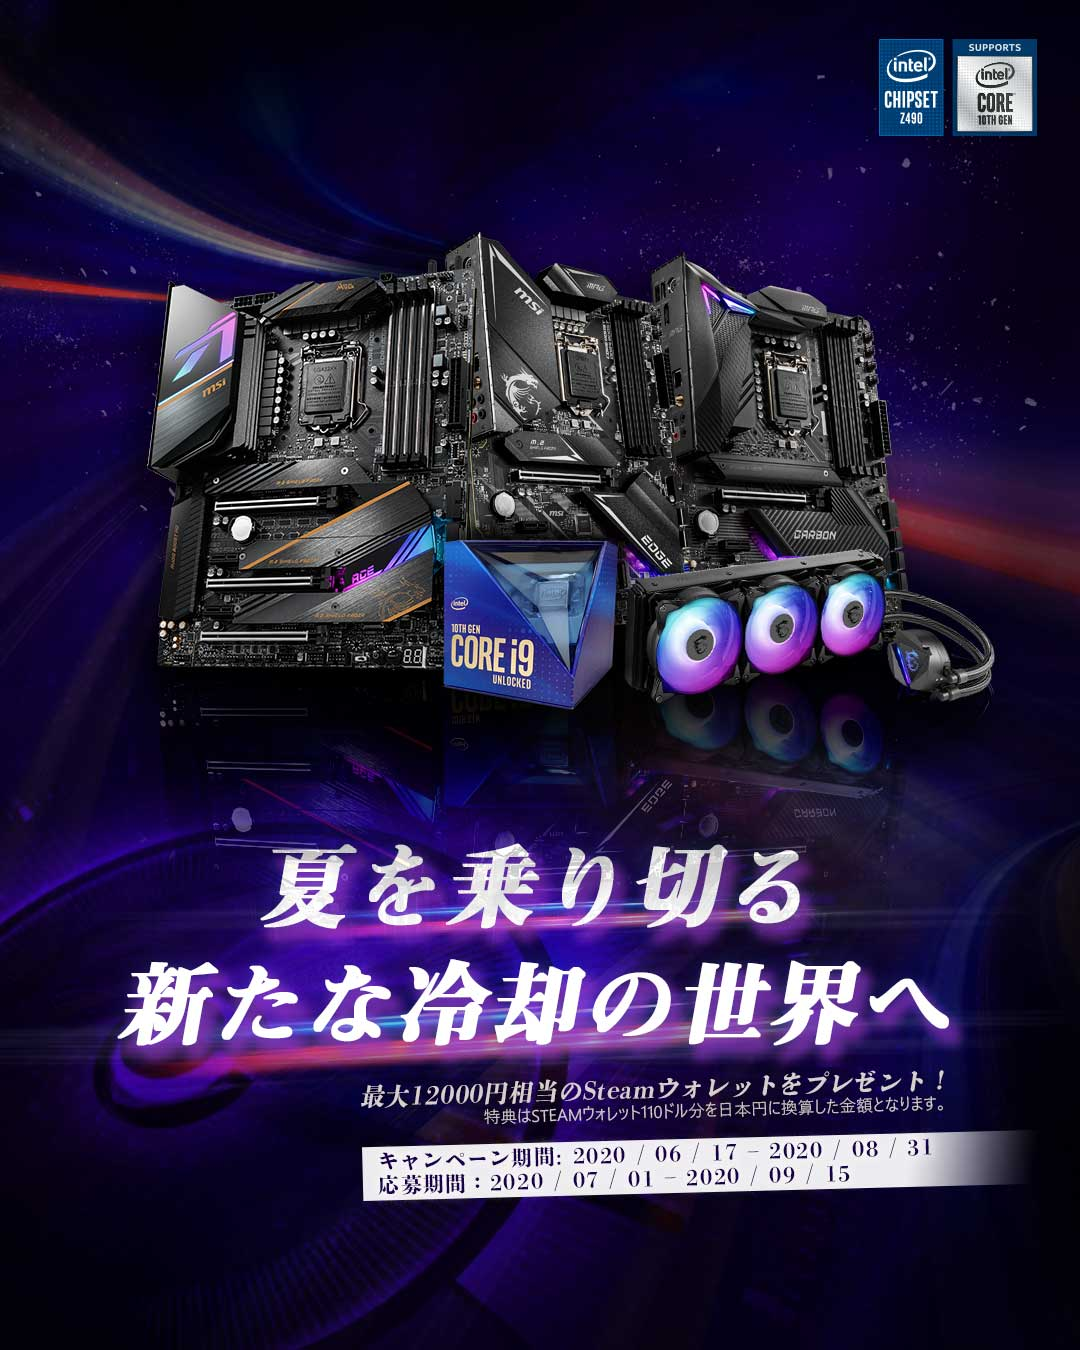 Z490_2nd wave_steam code promotion